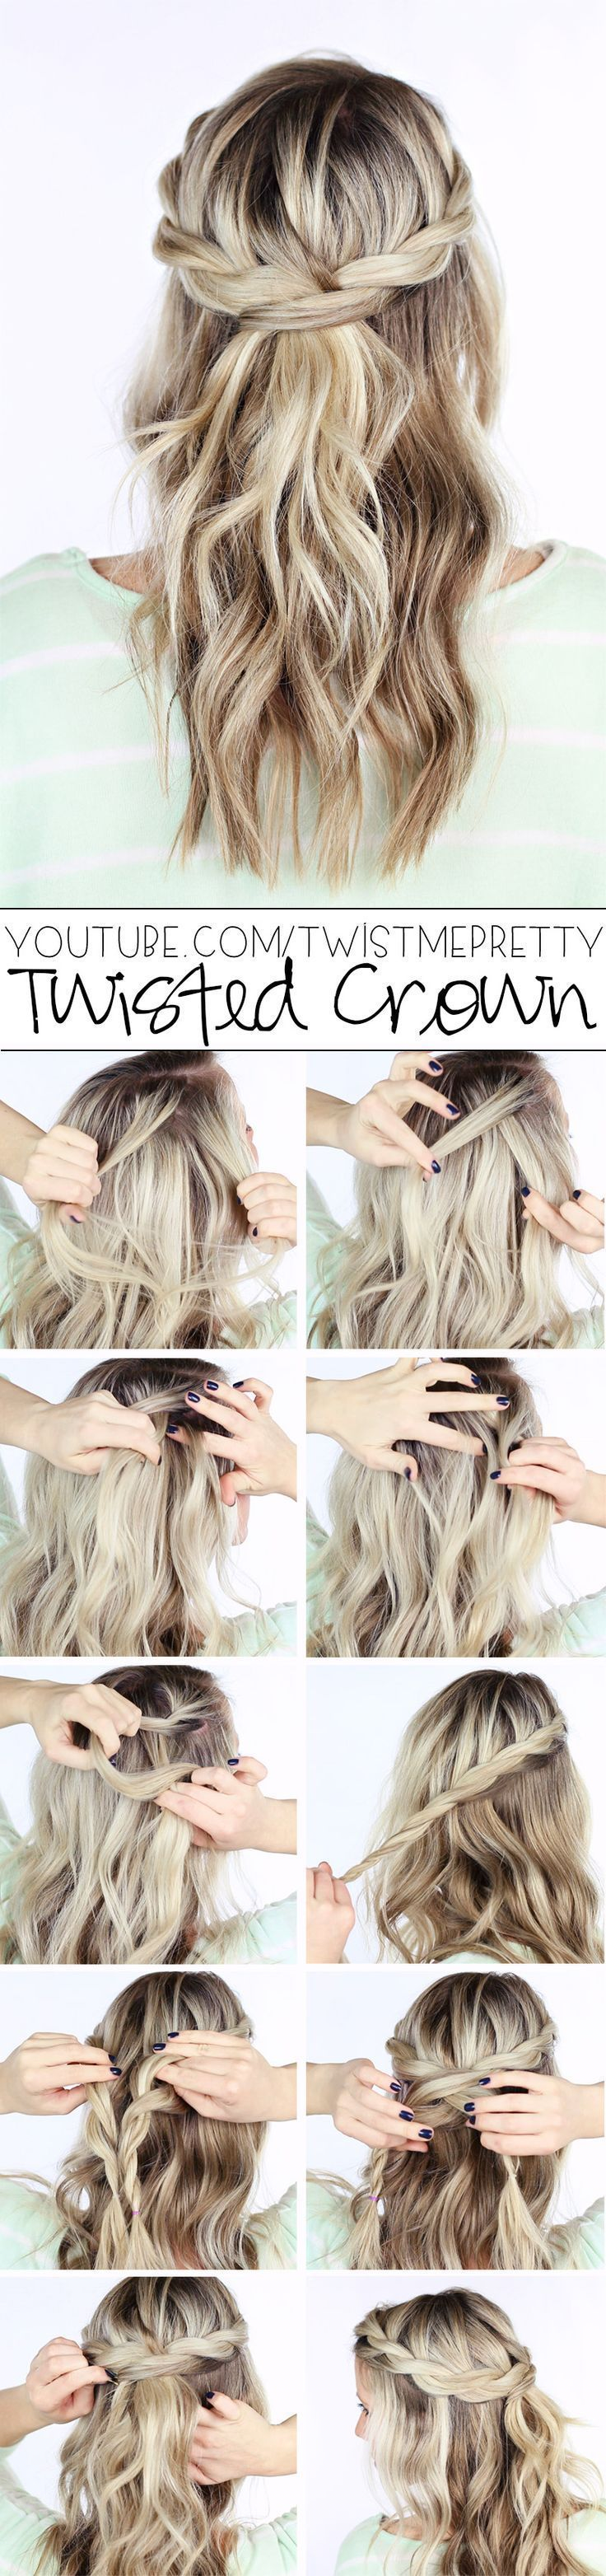 DIY Wedding Hairstyle – Twisted crown braid half up half down